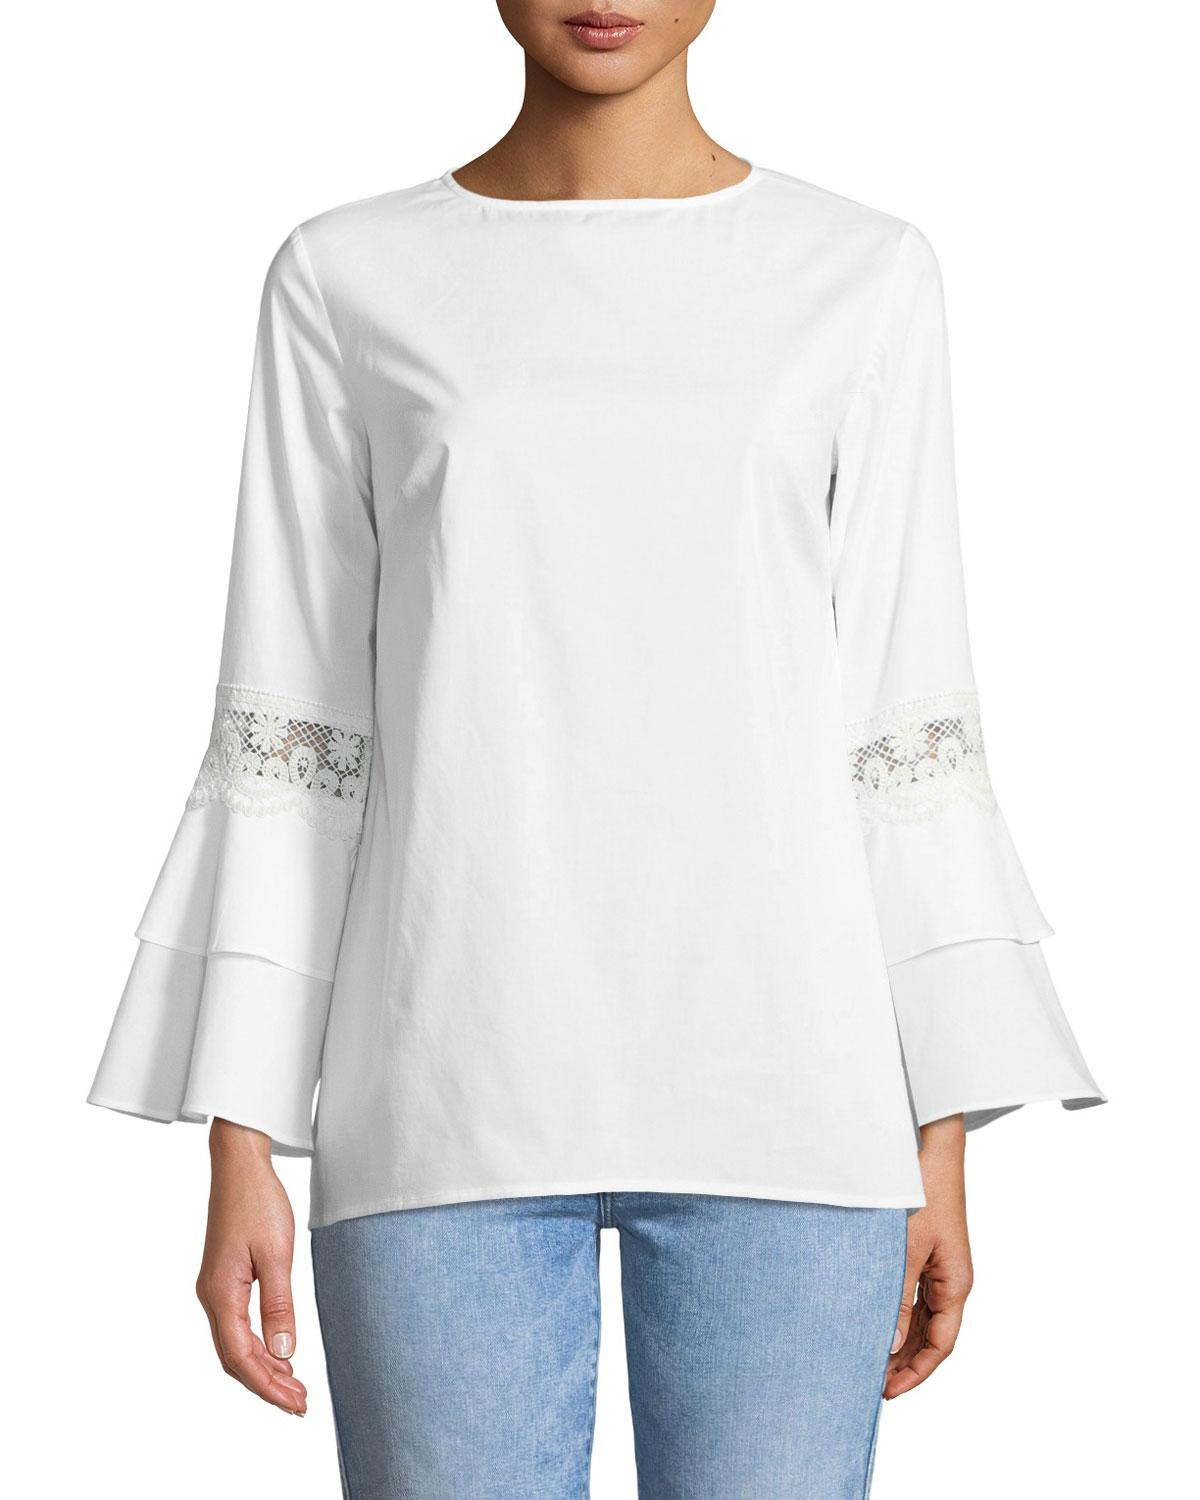 951b40c71b967 Lyst - Neiman Marcus Crochet-trim Tiered Bell-sleeve Blouse in White